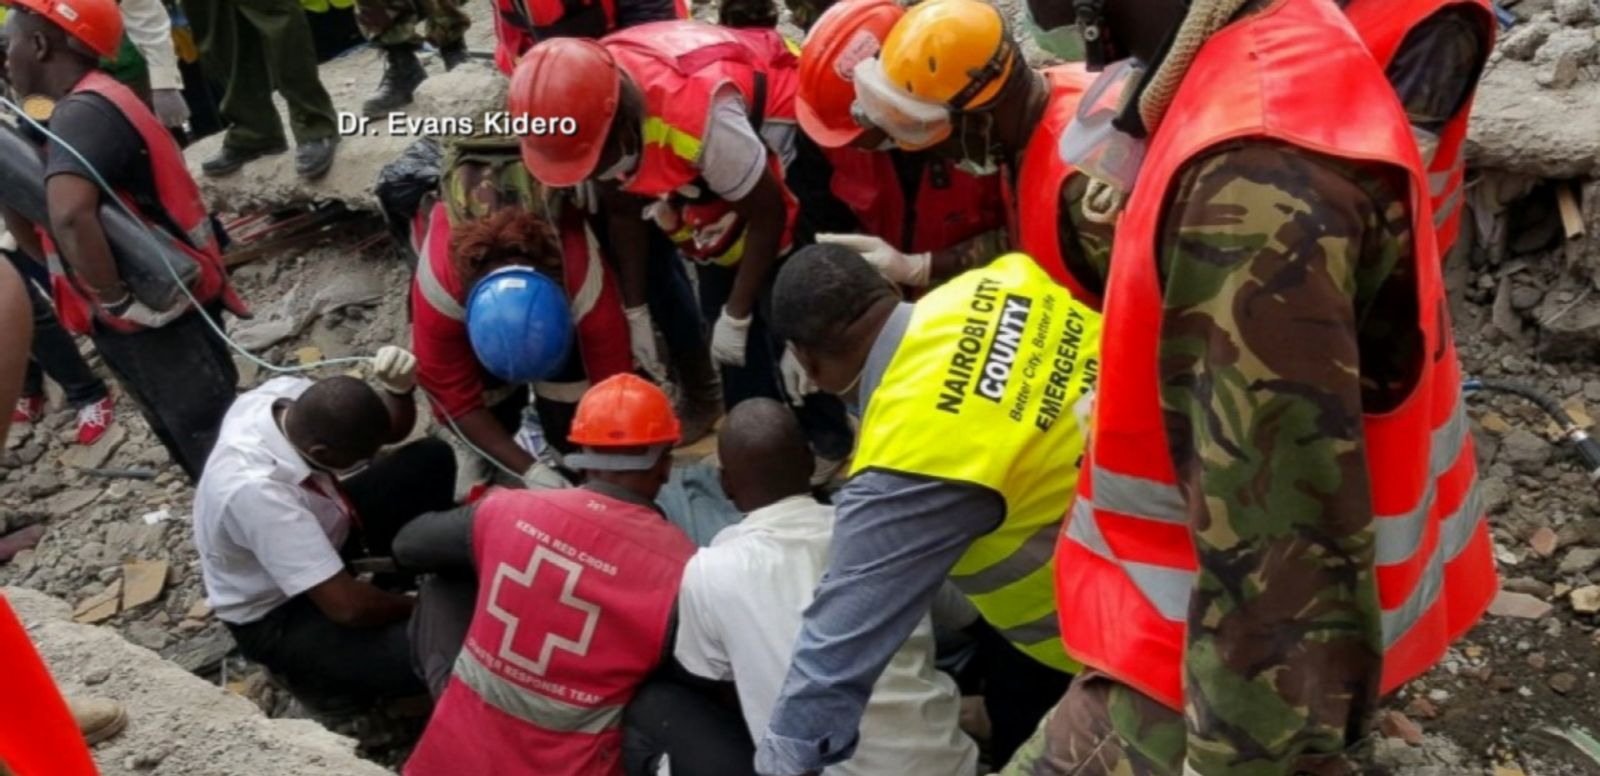 VIDEO: The woman's rescue from the rubble was broadcast on Kenyan TV.